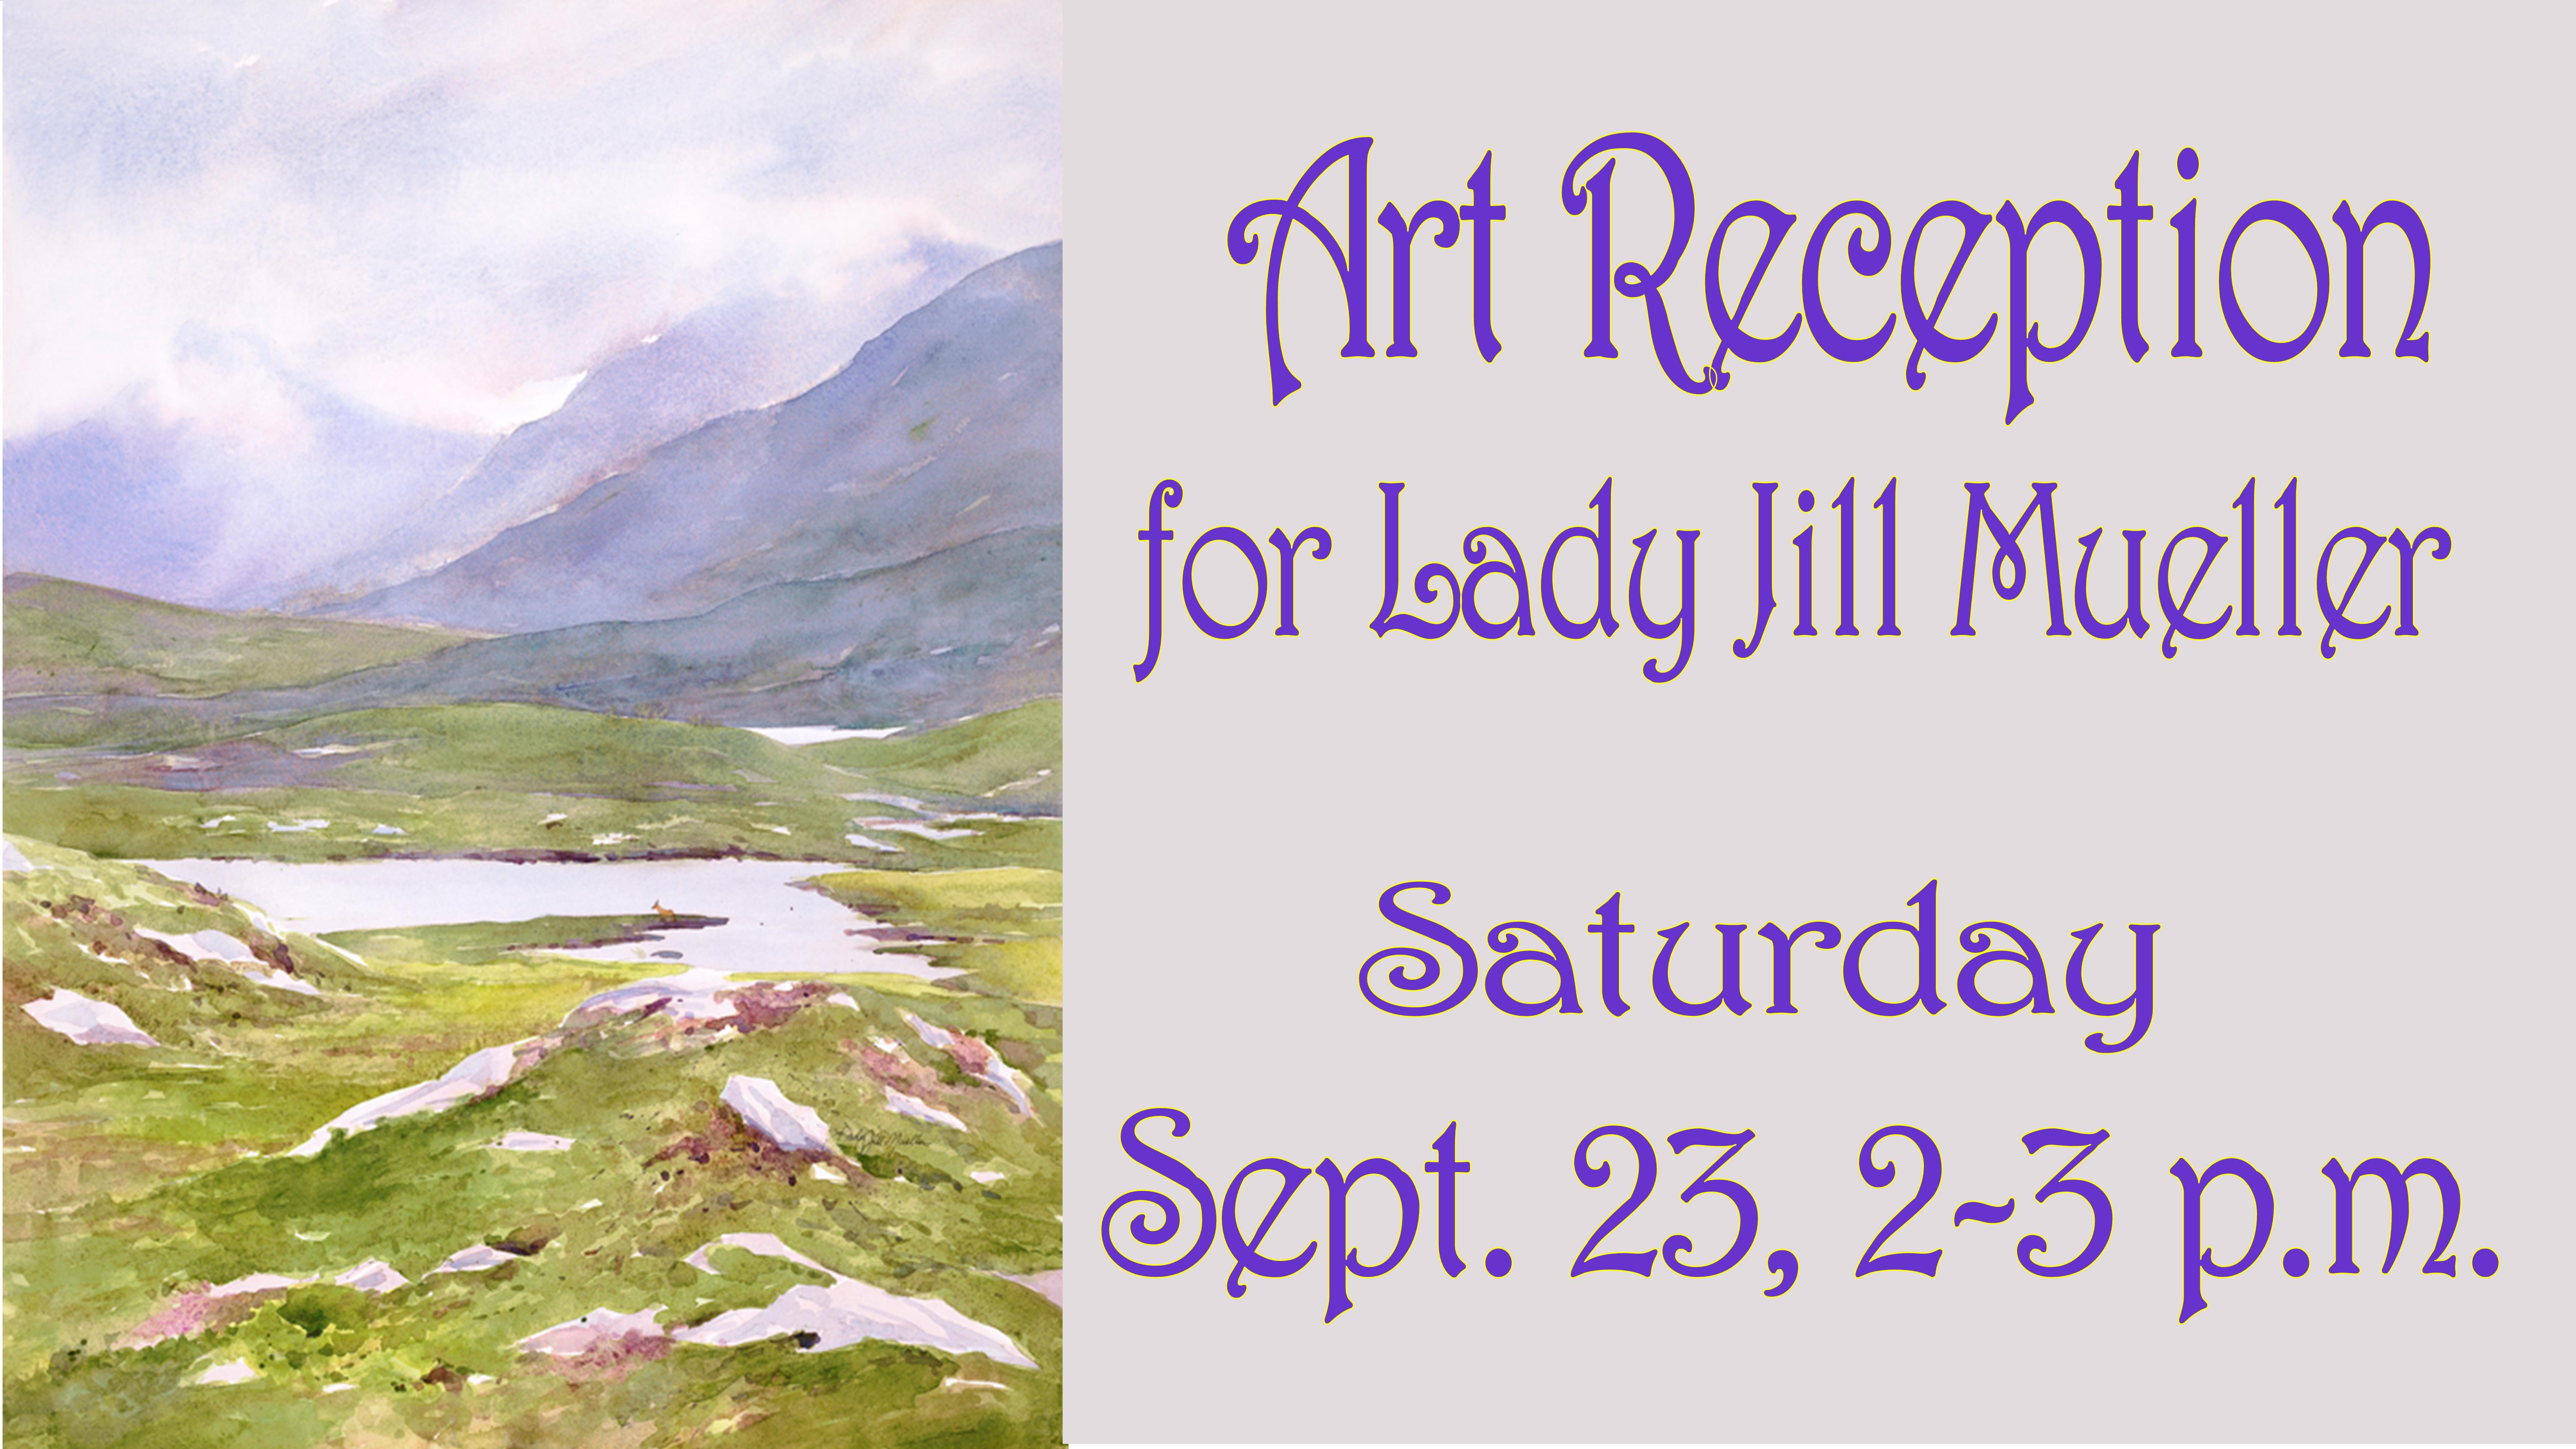 In Our Gallery, Art Reception: A 40 Year Collection of the Art of Lady Jill